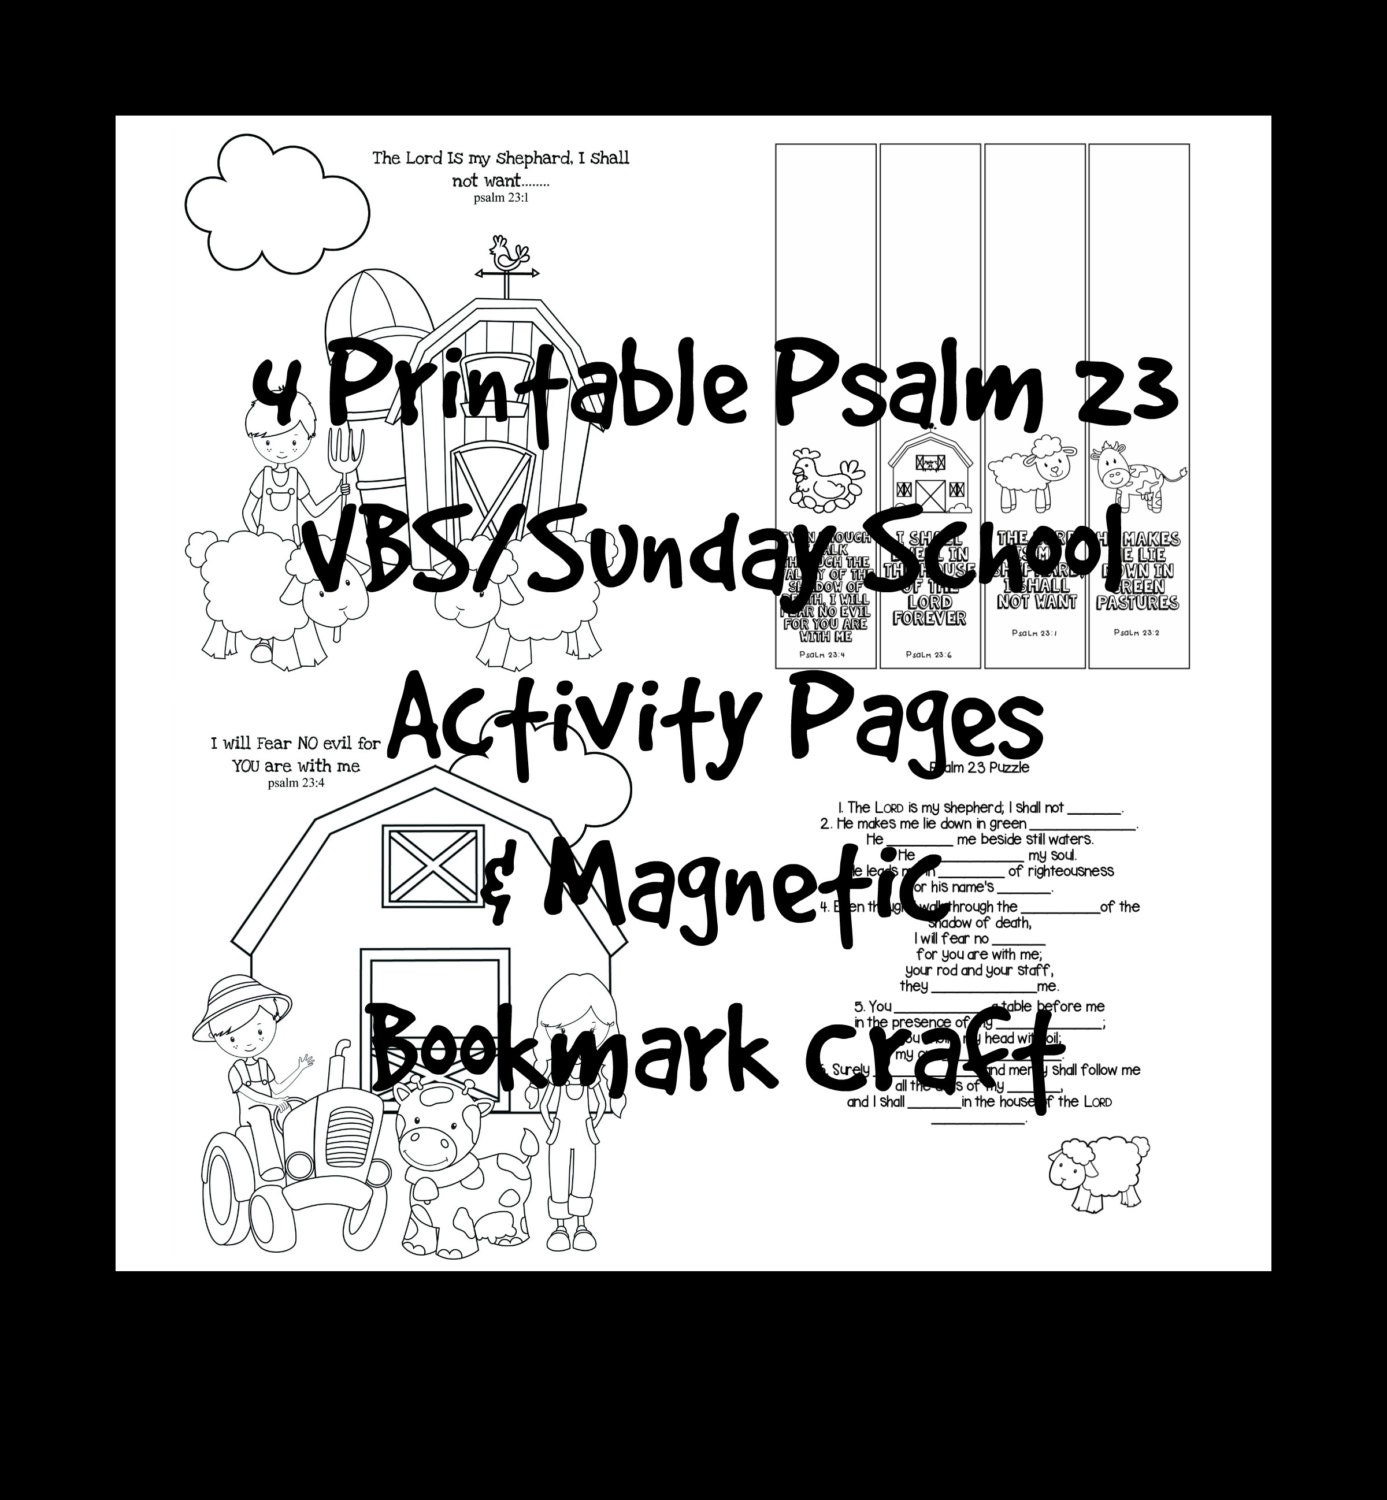 vbs sunday scripture activity coloring pages u0026 printable